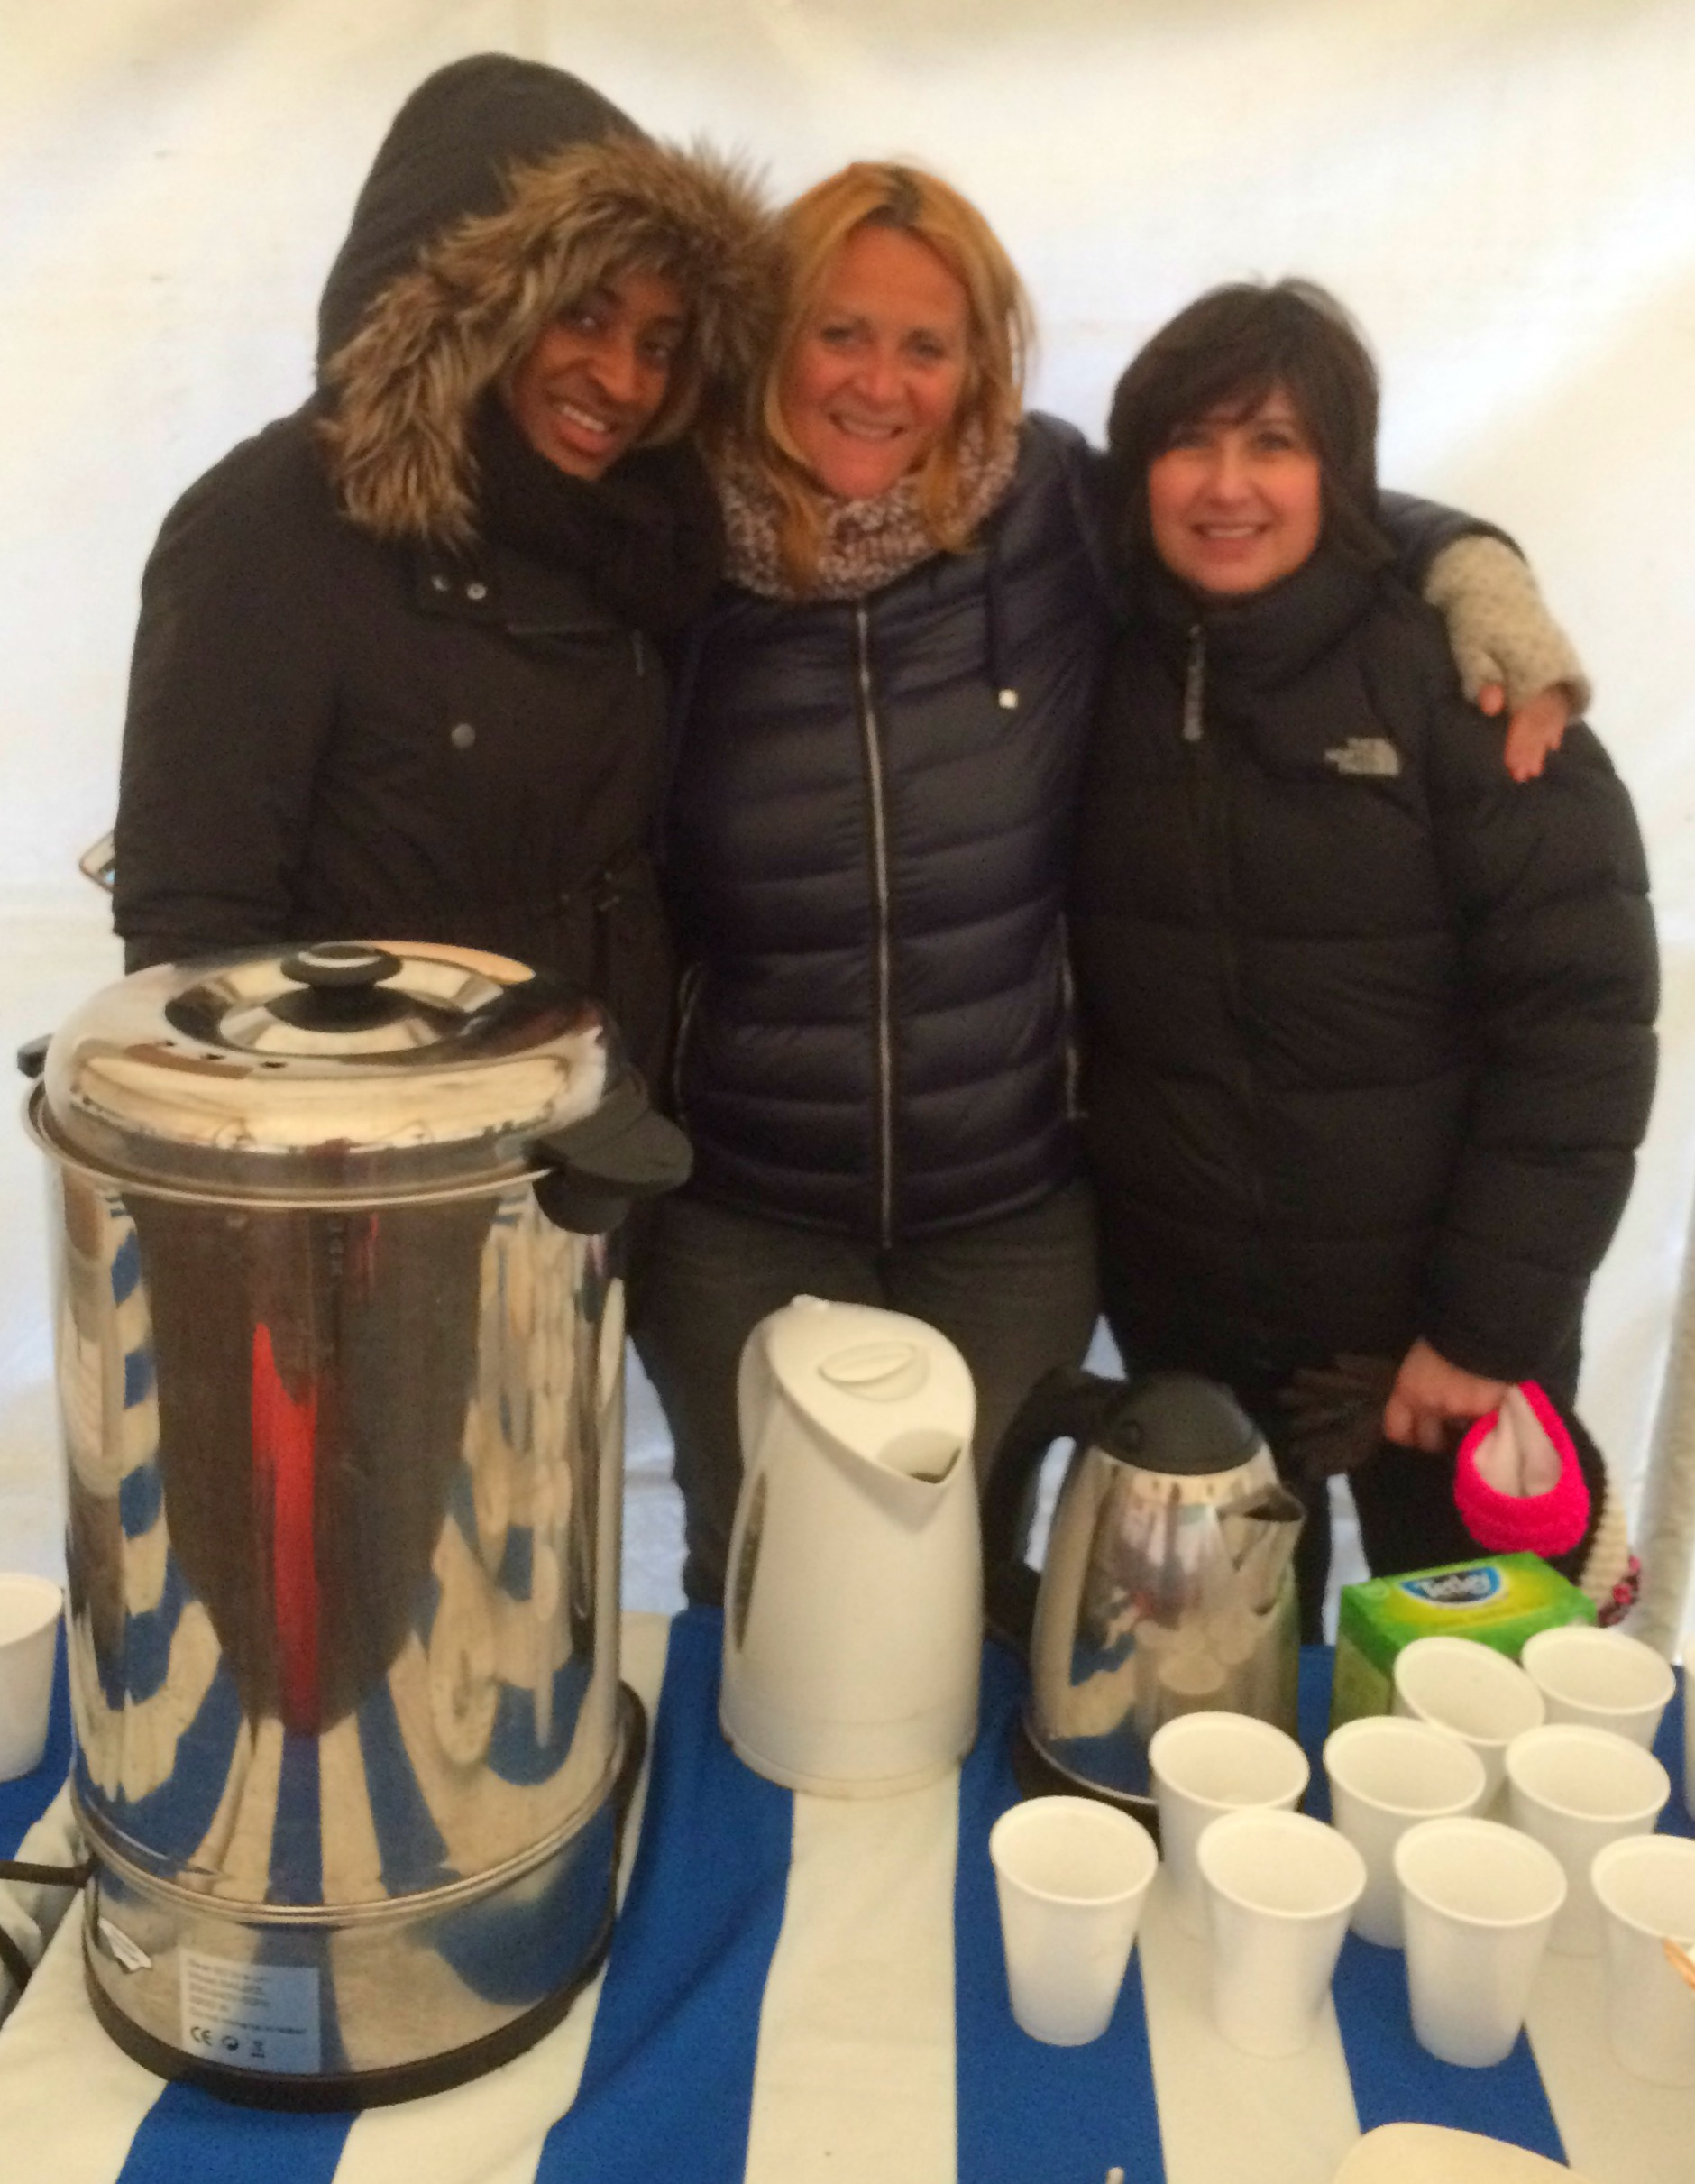 The Boardside Cafe ladies - the real heroes of the day